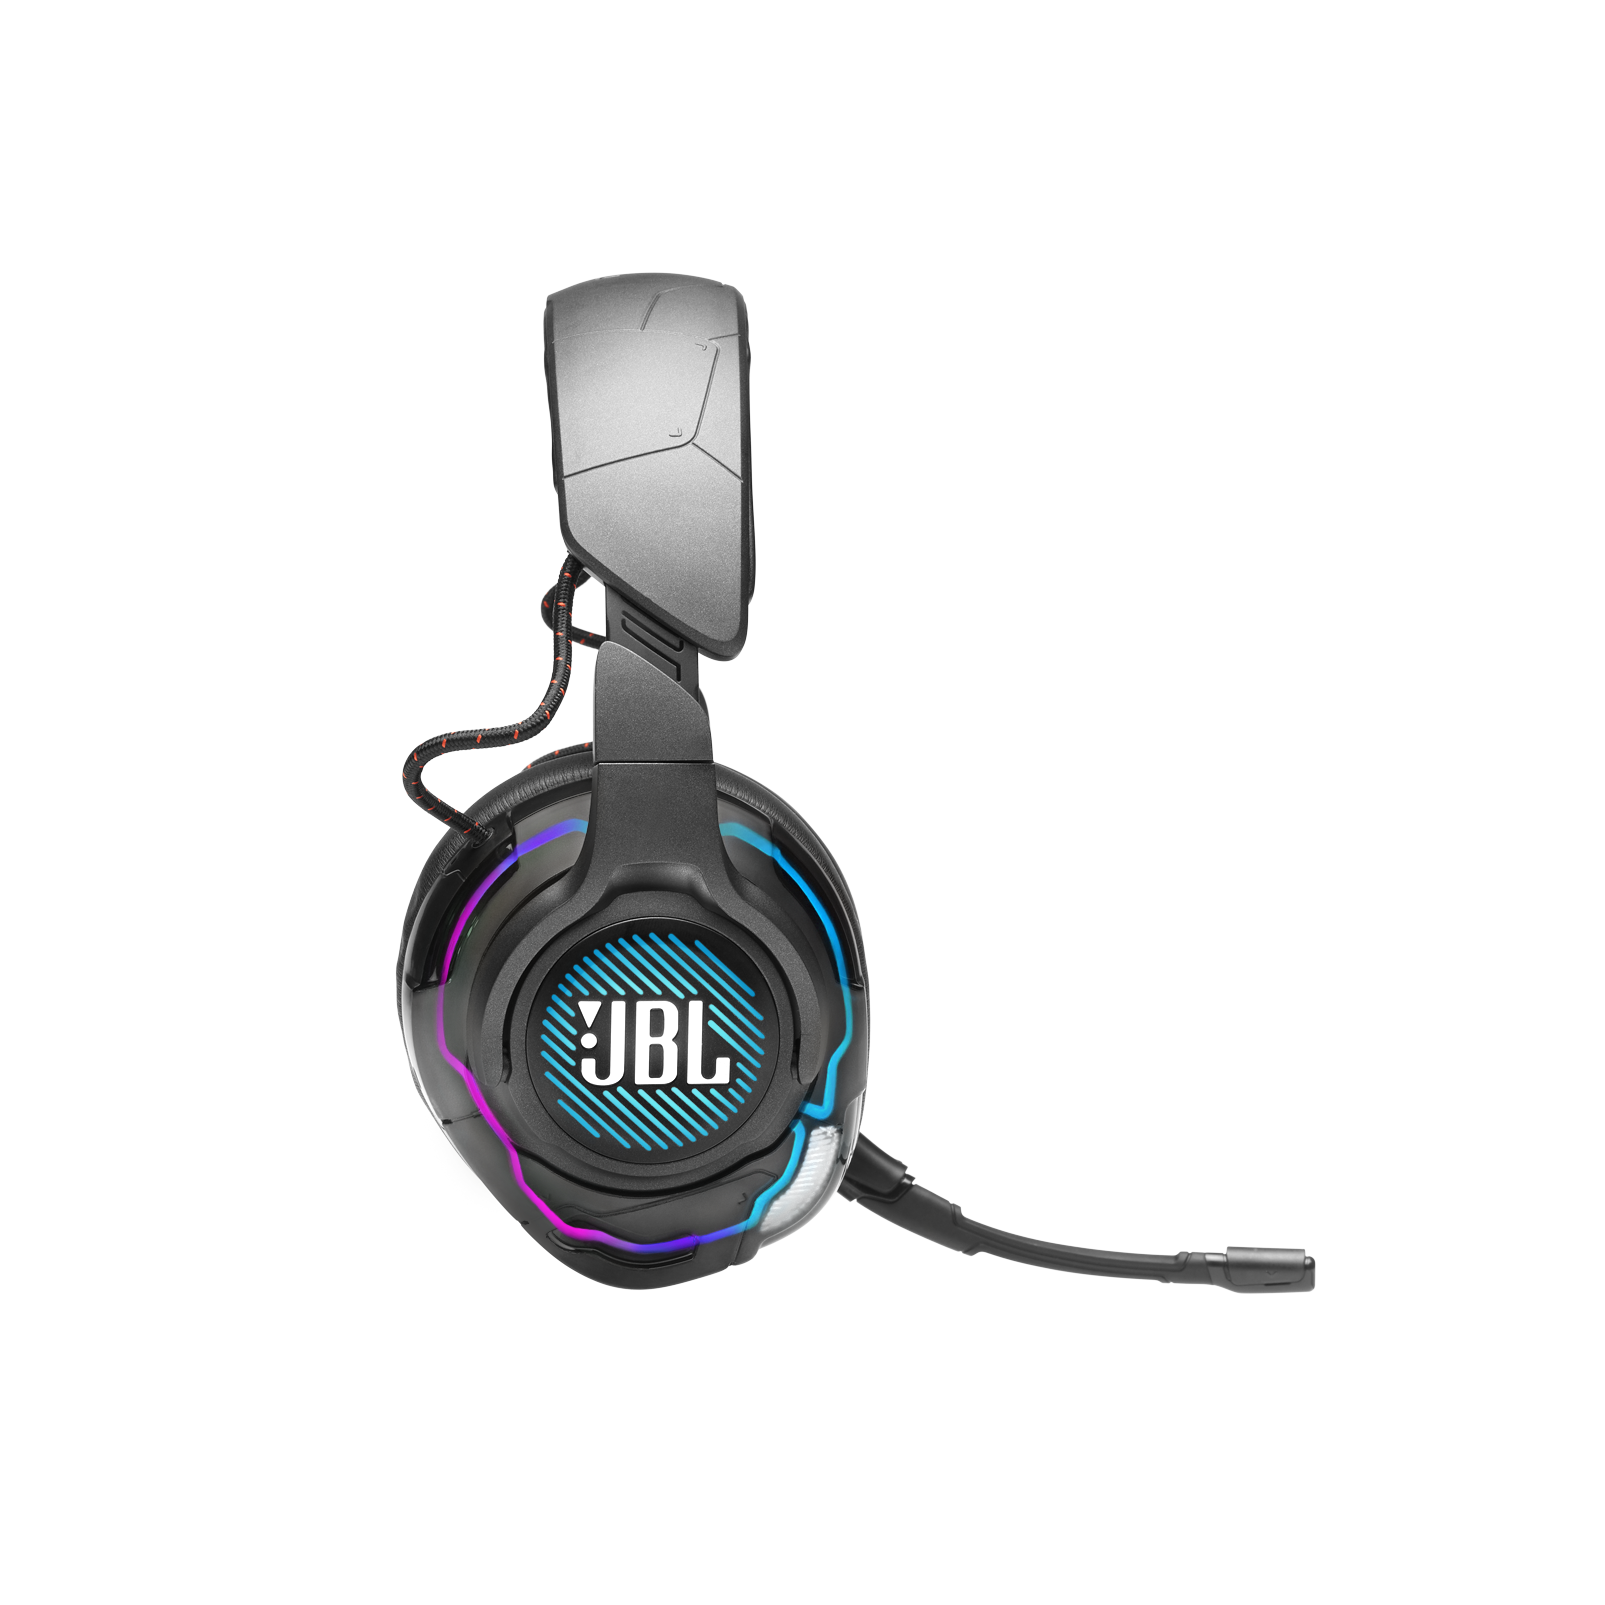 JBL Quantum ONE - Black - USB wired over-ear professional gaming headset with head-tracking enhanced JBL QuantumSPHERE 360 - Detailshot 5